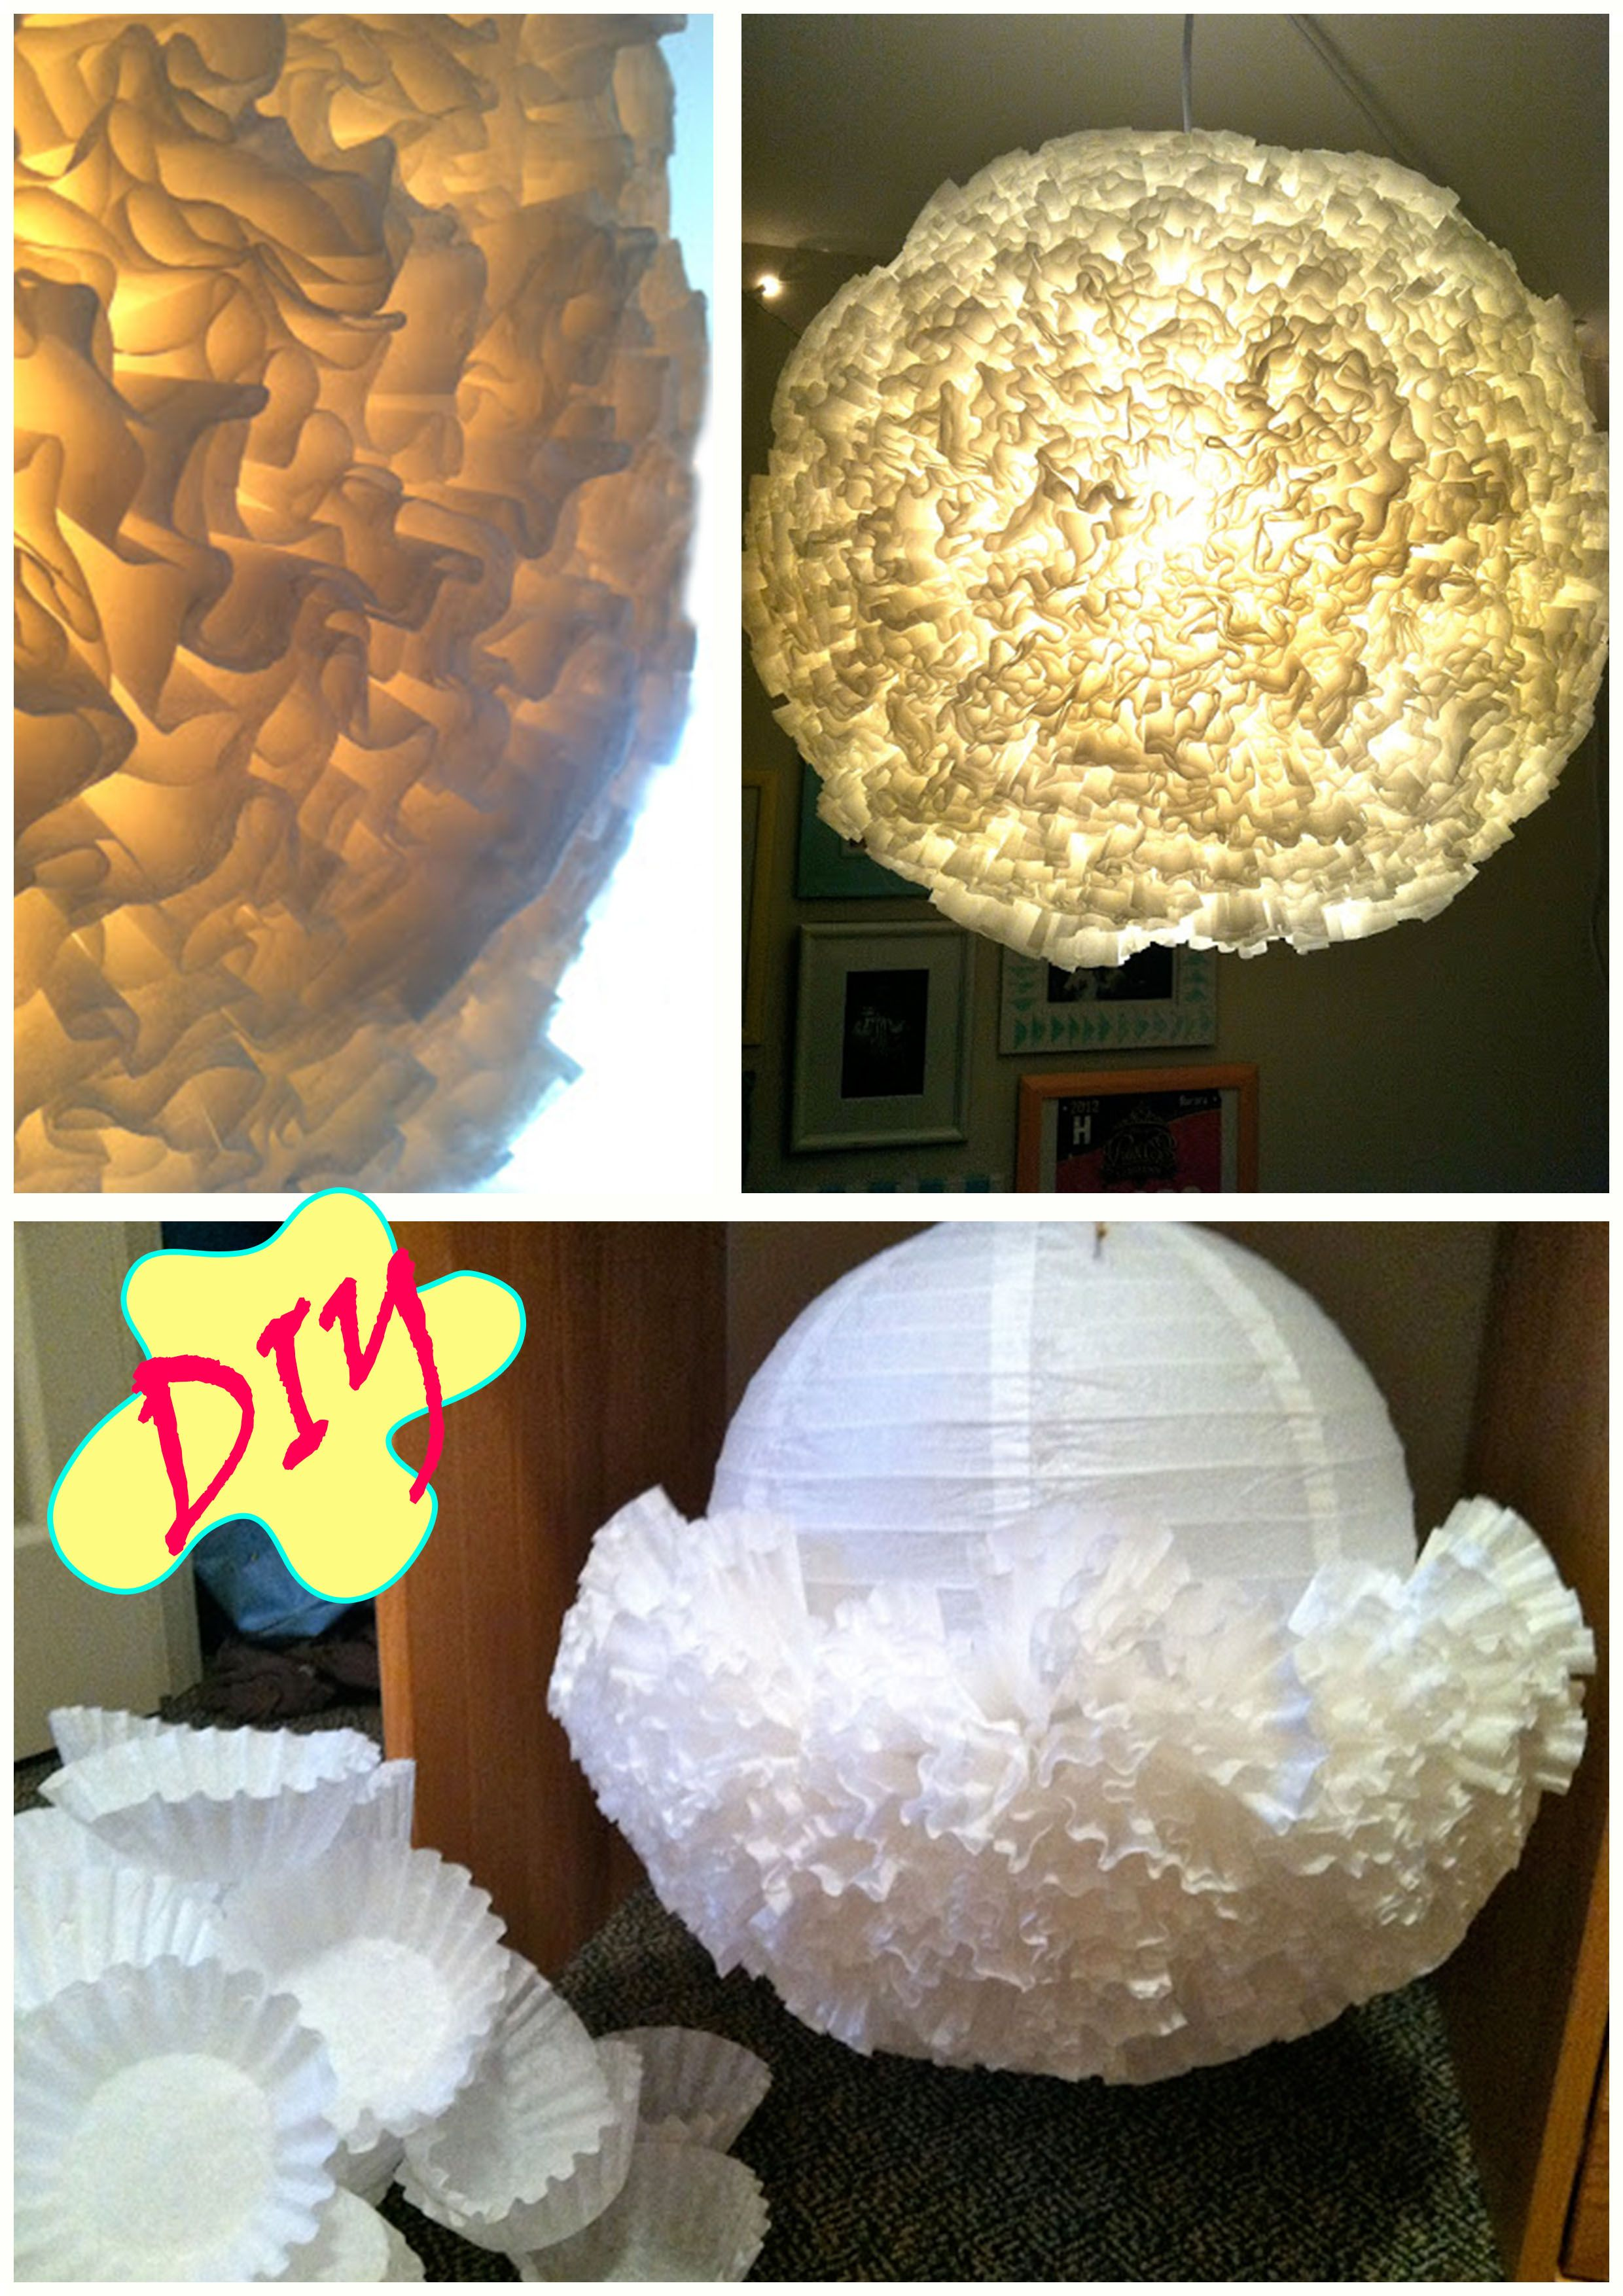 Diy coffee filter lantern it looks really awesome that project diy coffee filter lantern it looks really awesome that project will be in my favourites with the doily lamp project just use a white paper latern arubaitofo Images